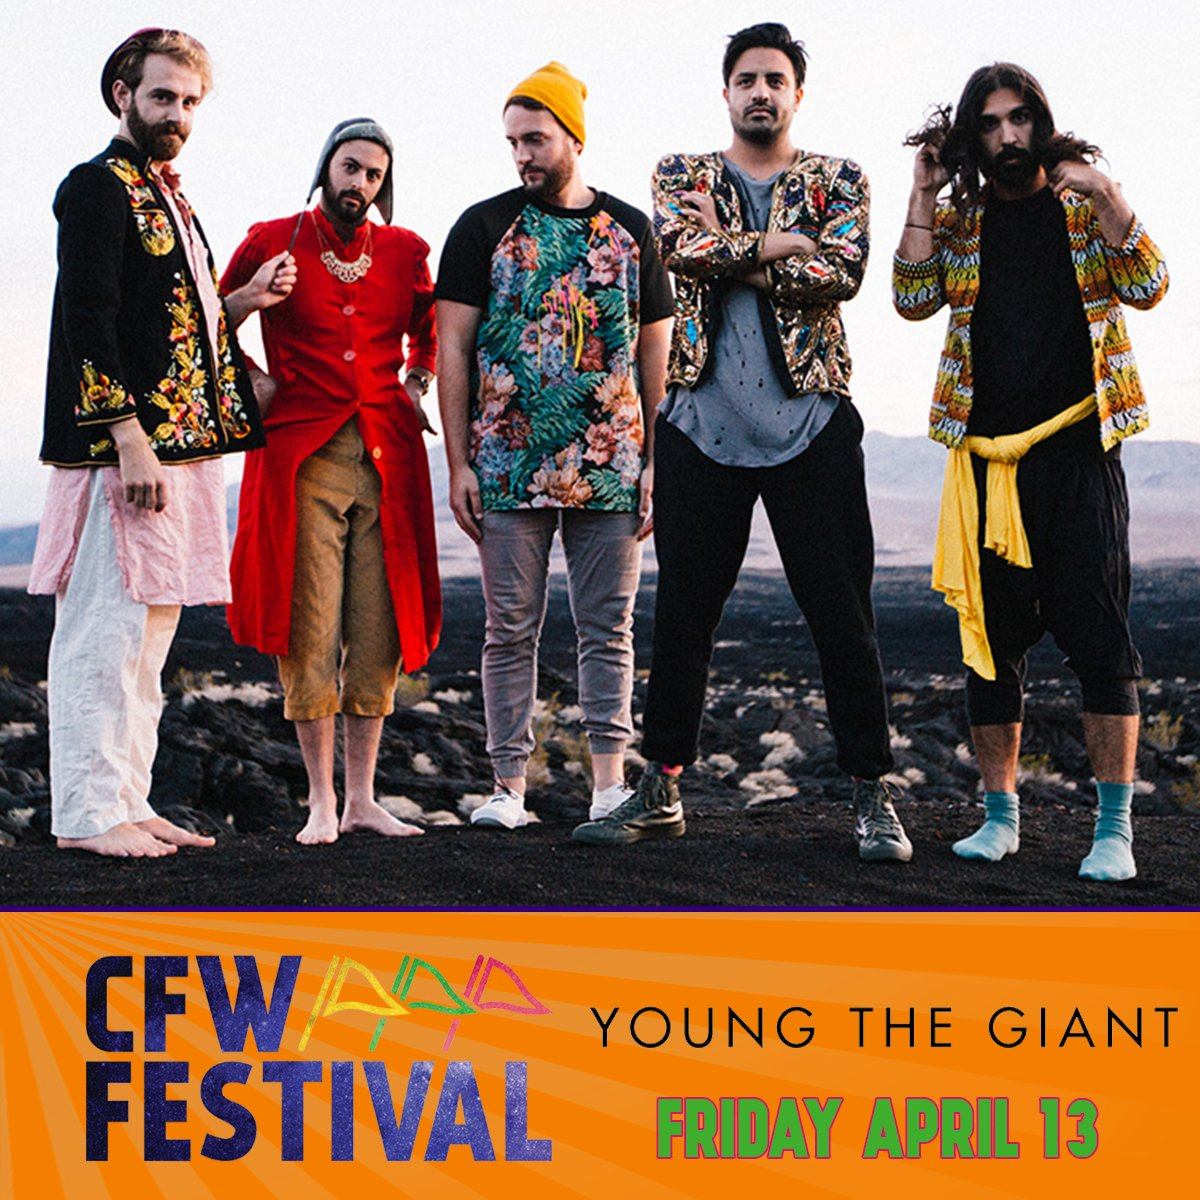 We're playing the first @CFW_Festival this April in Arlington, TX !! Tickets and info: https://t.co/8gGC4uk30d https://t.co/yQ0DXIl1VL